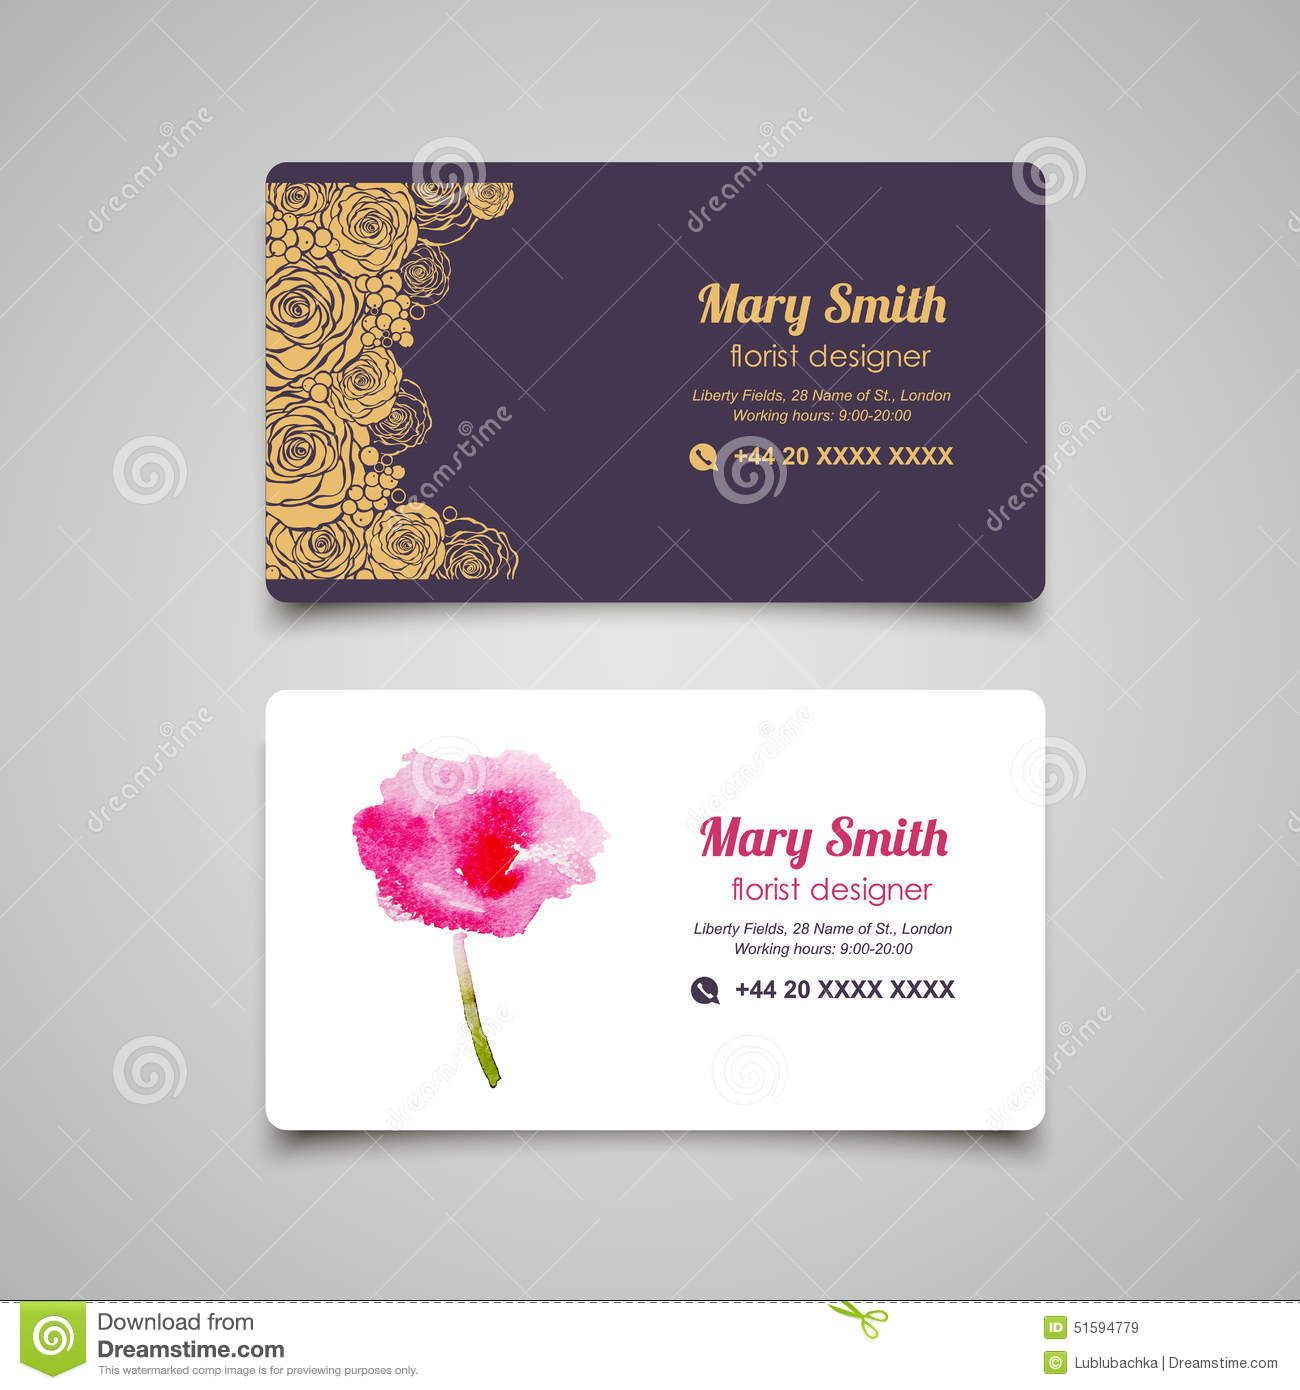 Stunning floral design business cards contemporary business card florist business card vector design templates set 51594779 reheart Image collections